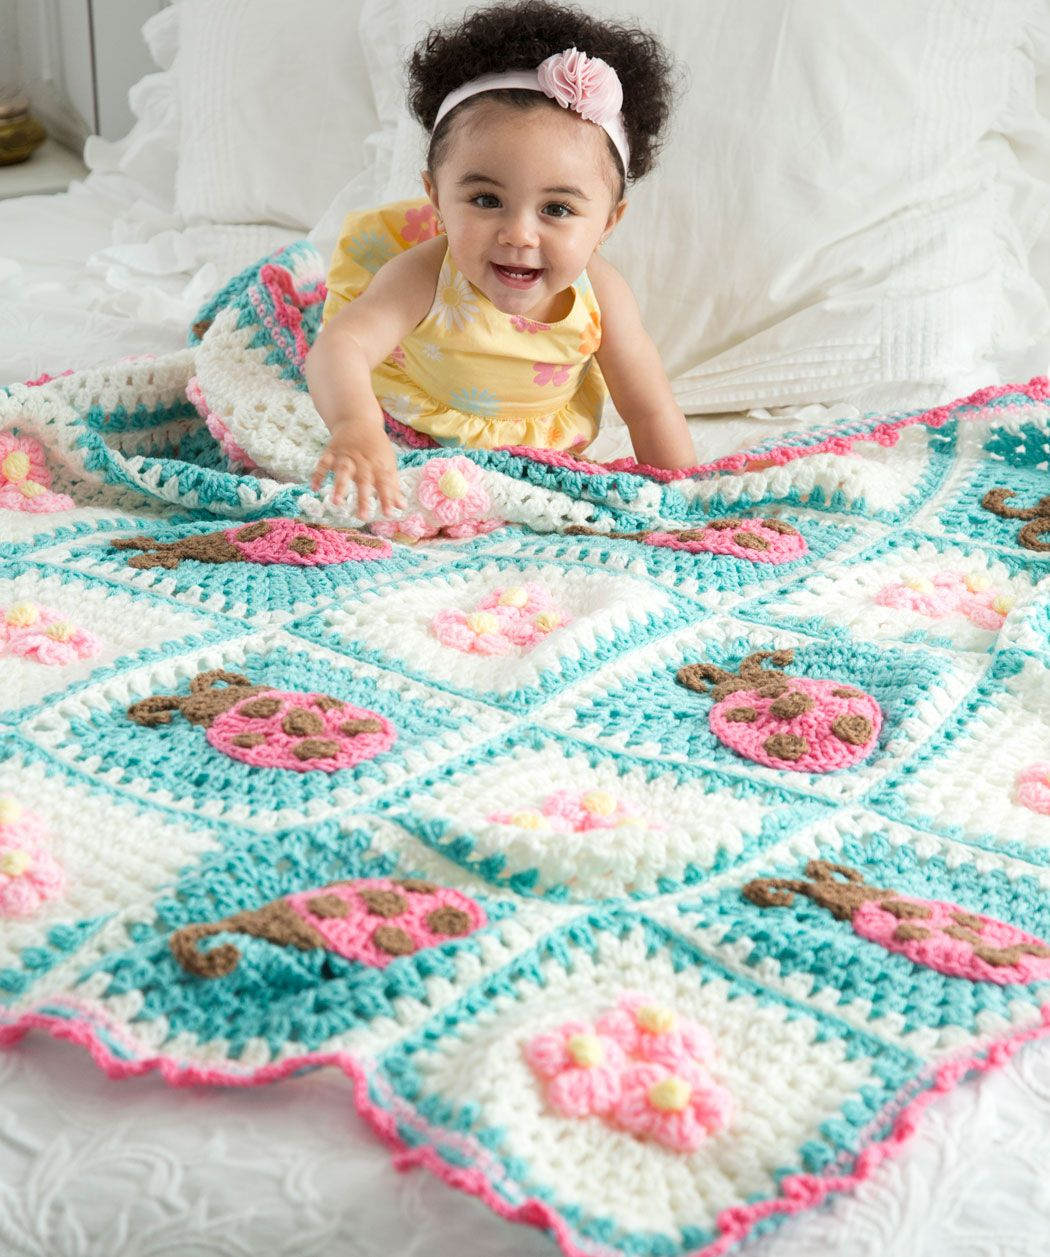 Bugs and blooms blanket crochet pattern red heart everytime i bugs and blooms blanket free crochet pattern at red heart designed by terry day bankloansurffo Image collections